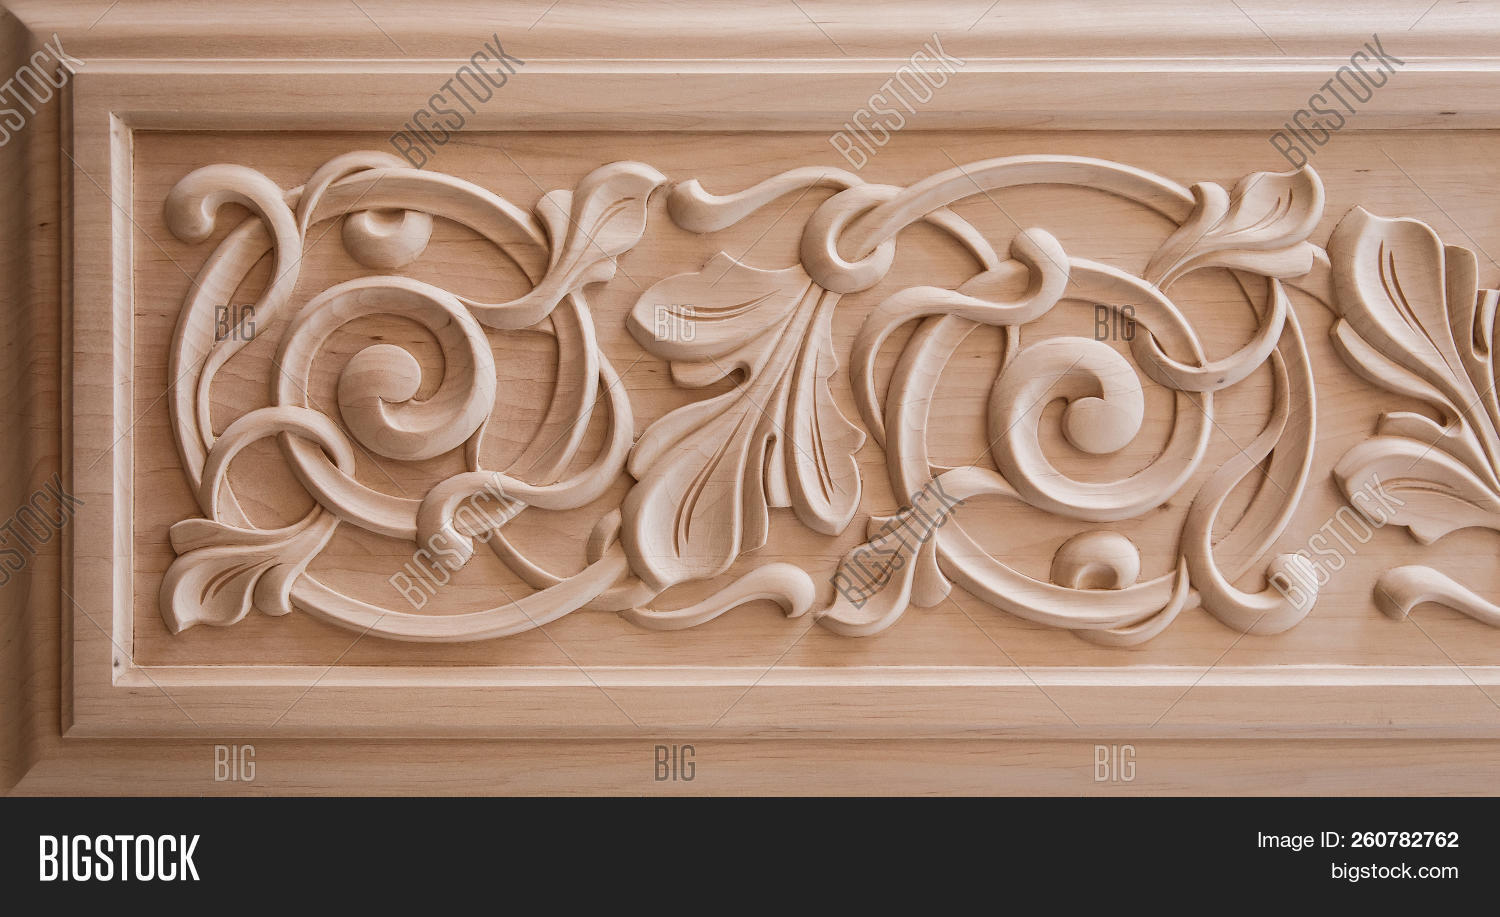 stock photo wood processing joinery work wood carving decorative, abstract, floral ornament pattern of flowe